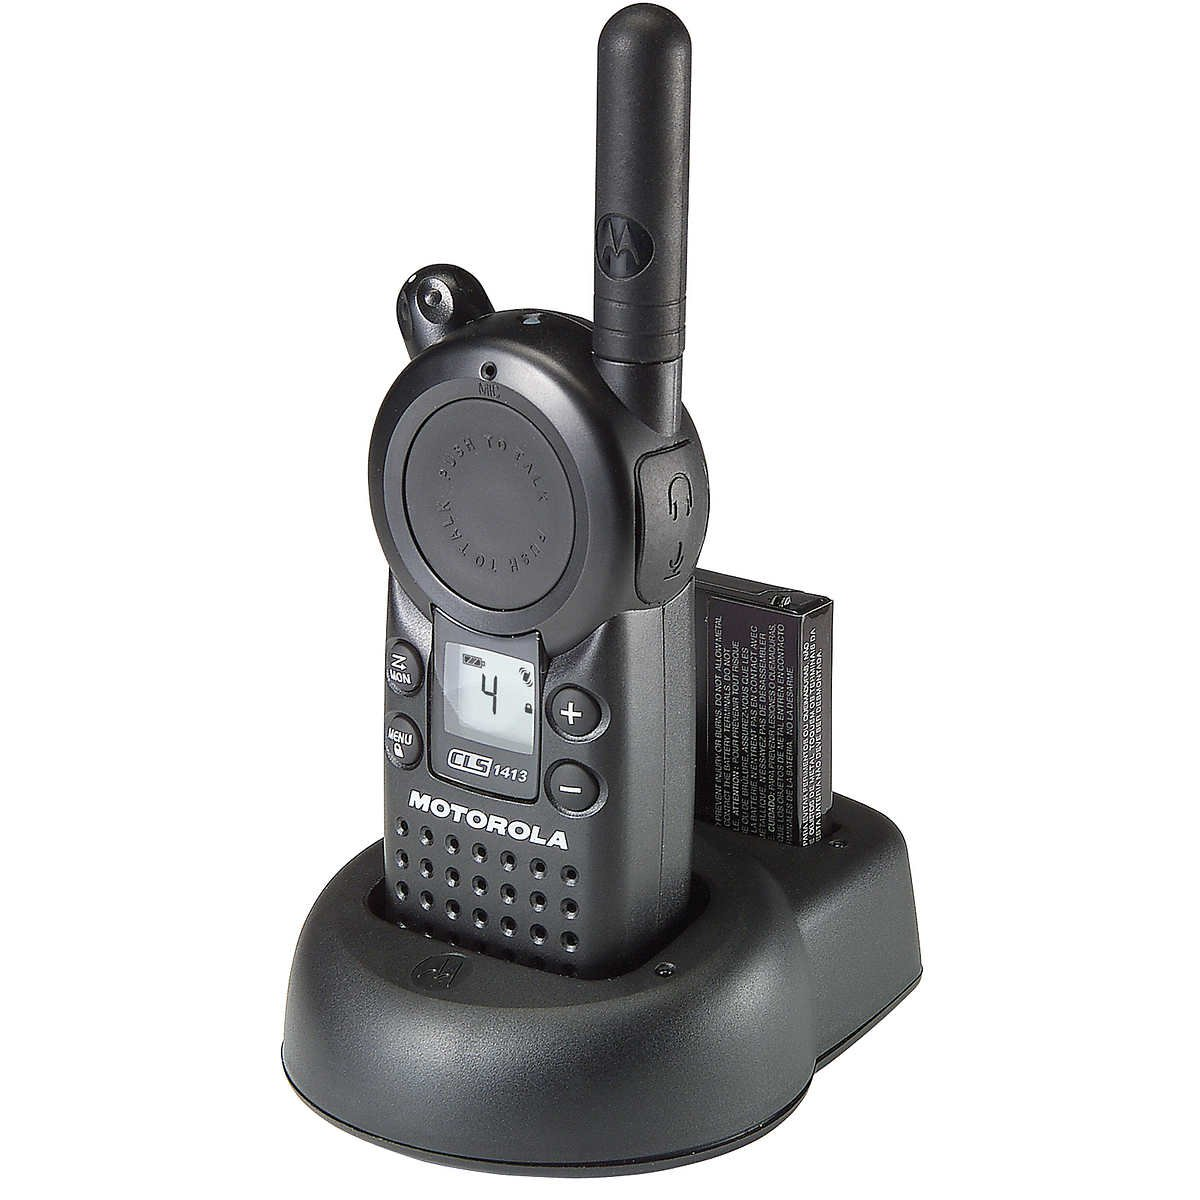 Motorola CLS1413 - UHF 1 Watt 4 Channel Radio(Black)